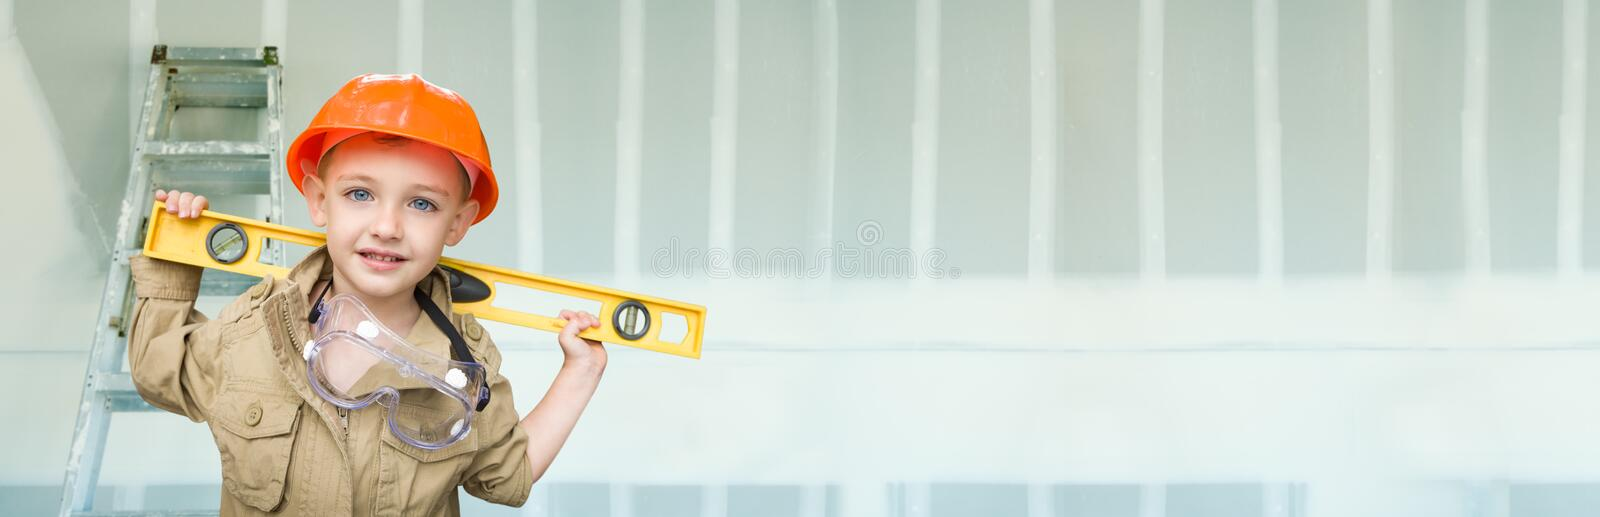 Cute Young Boy Dressed As Contractor Holding Level Against Drywall Banner Background with Ladder royalty free stock photo